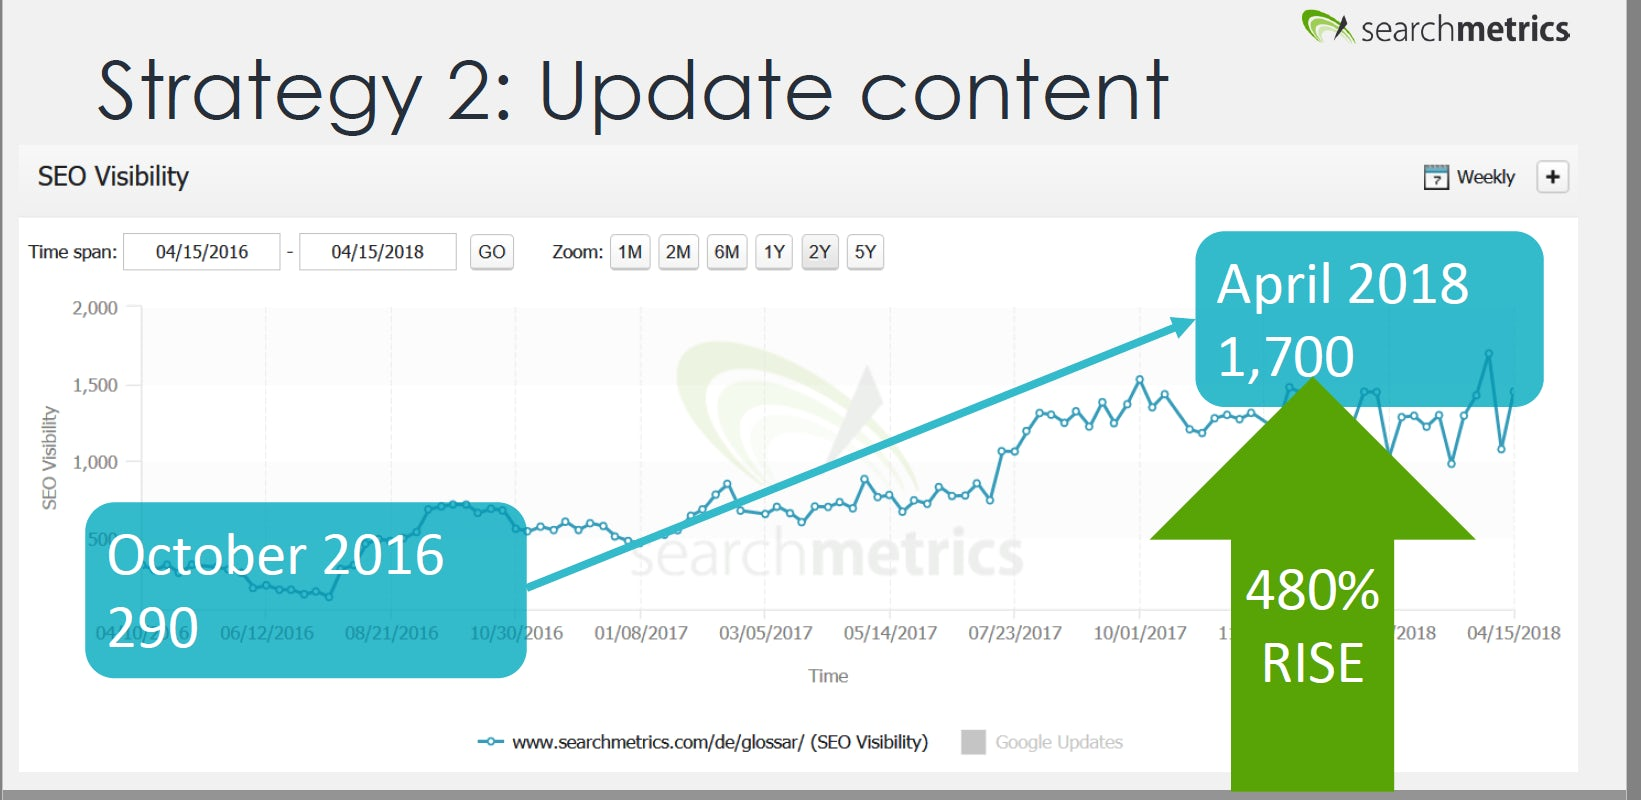 visibility of searchmetrics.com after content update